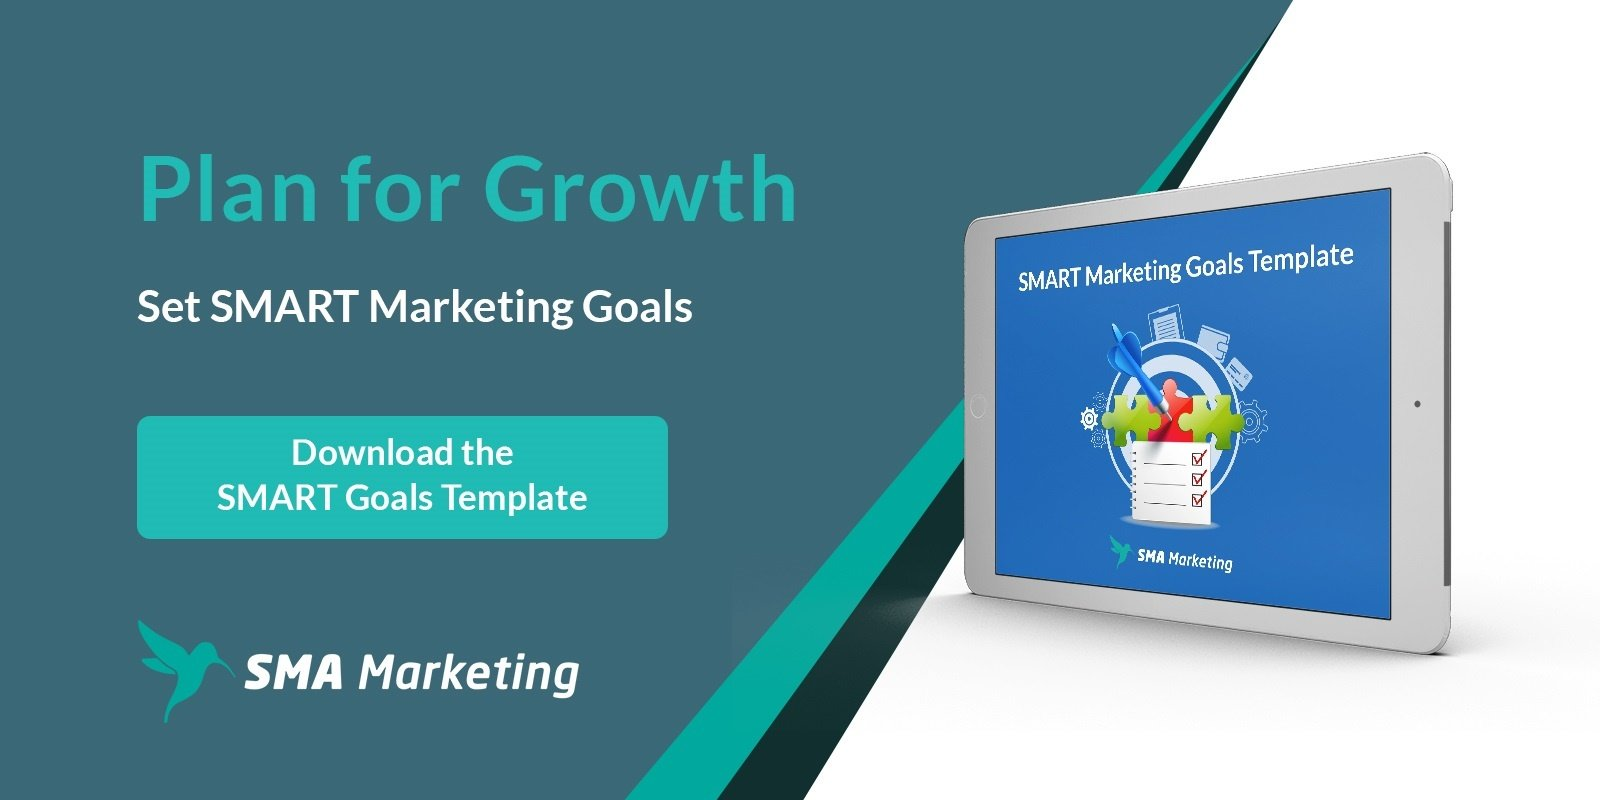 SMART Marketing Goals Template download